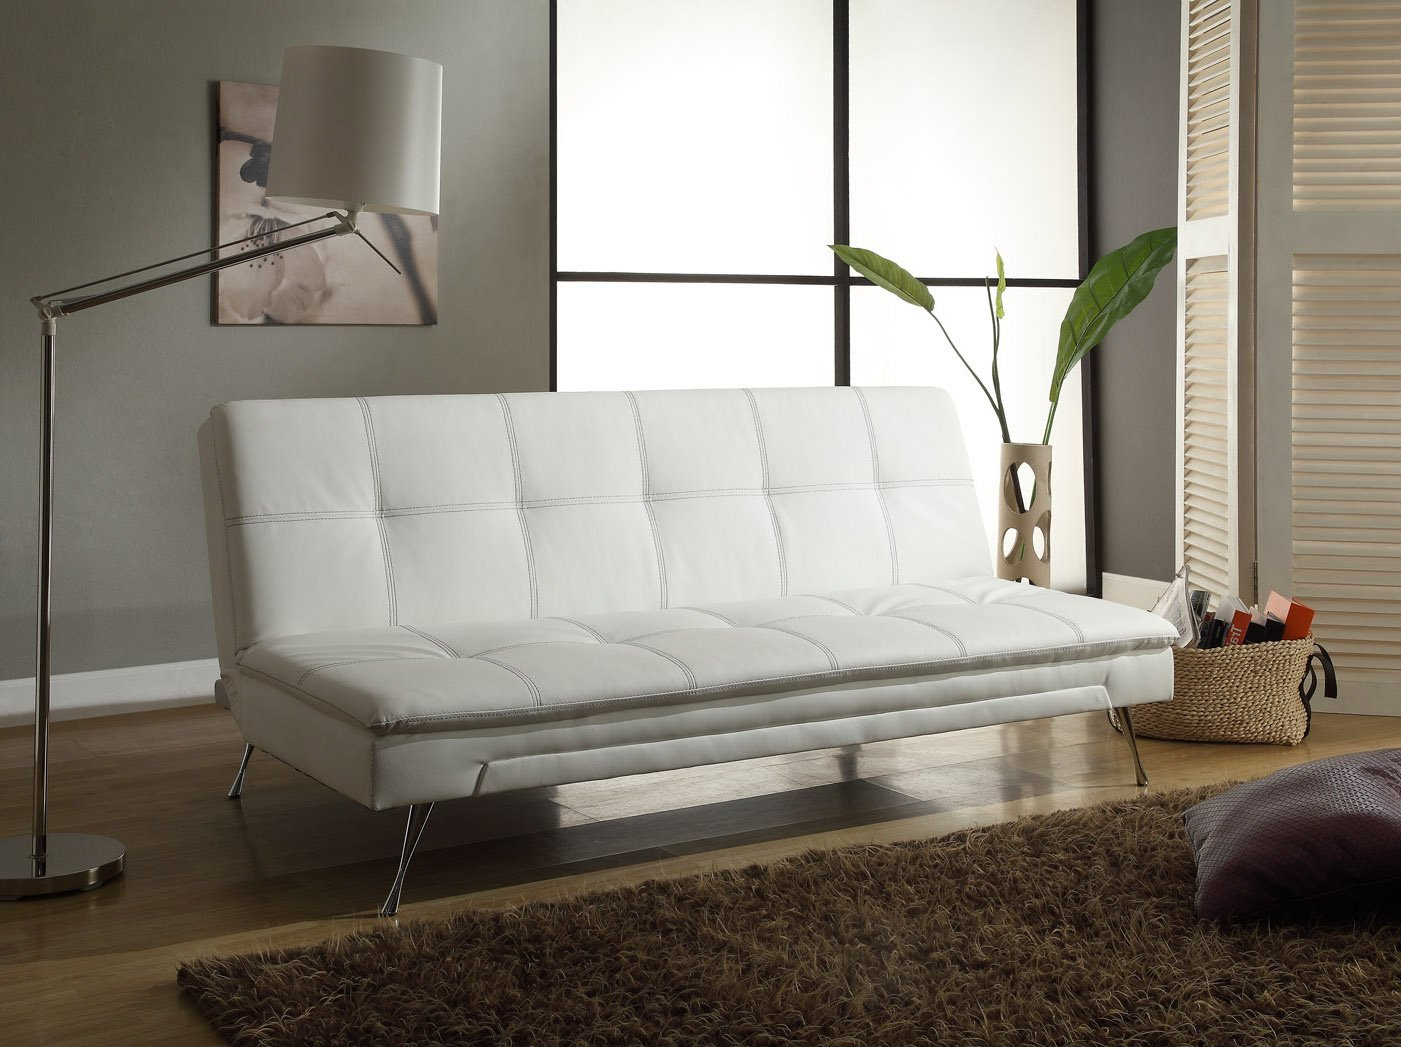 Buy Cheap Sofa Cheap Sectional Sofa : Cheap Sofa Beds For Sale from cheap-sofa.blogspot.com size 1401 x 1047 jpeg 203kB